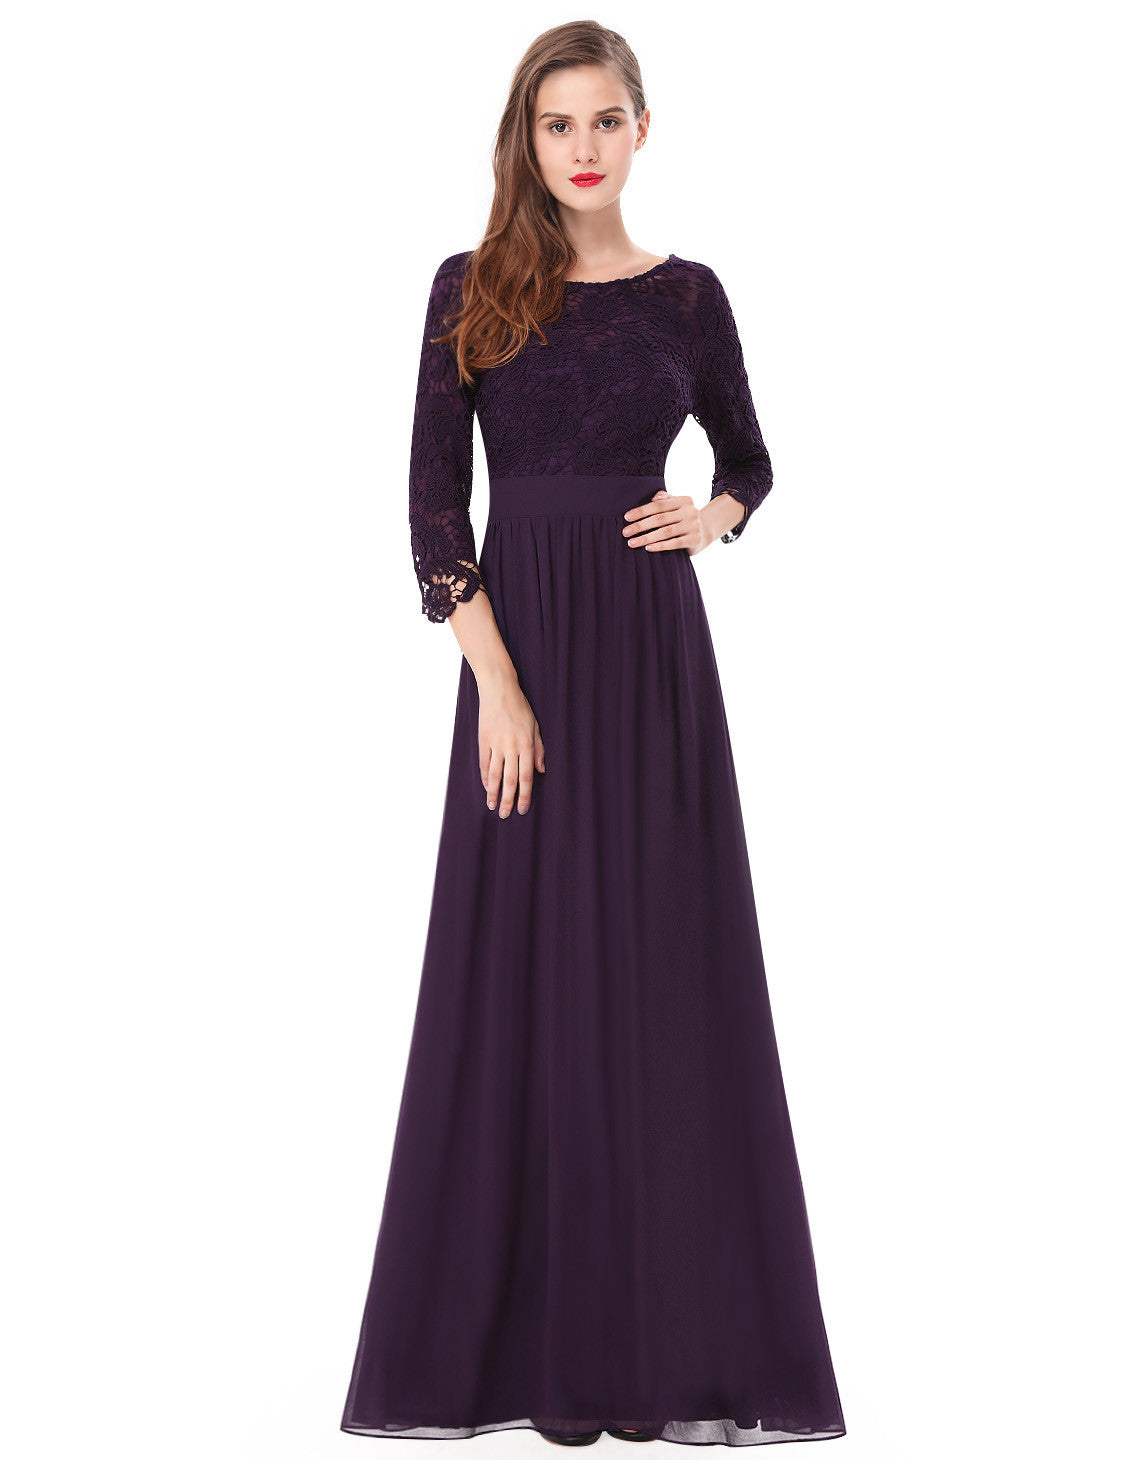 Obeige Elegant Purple 3/4 Sleeve Lace Long Evening Dress